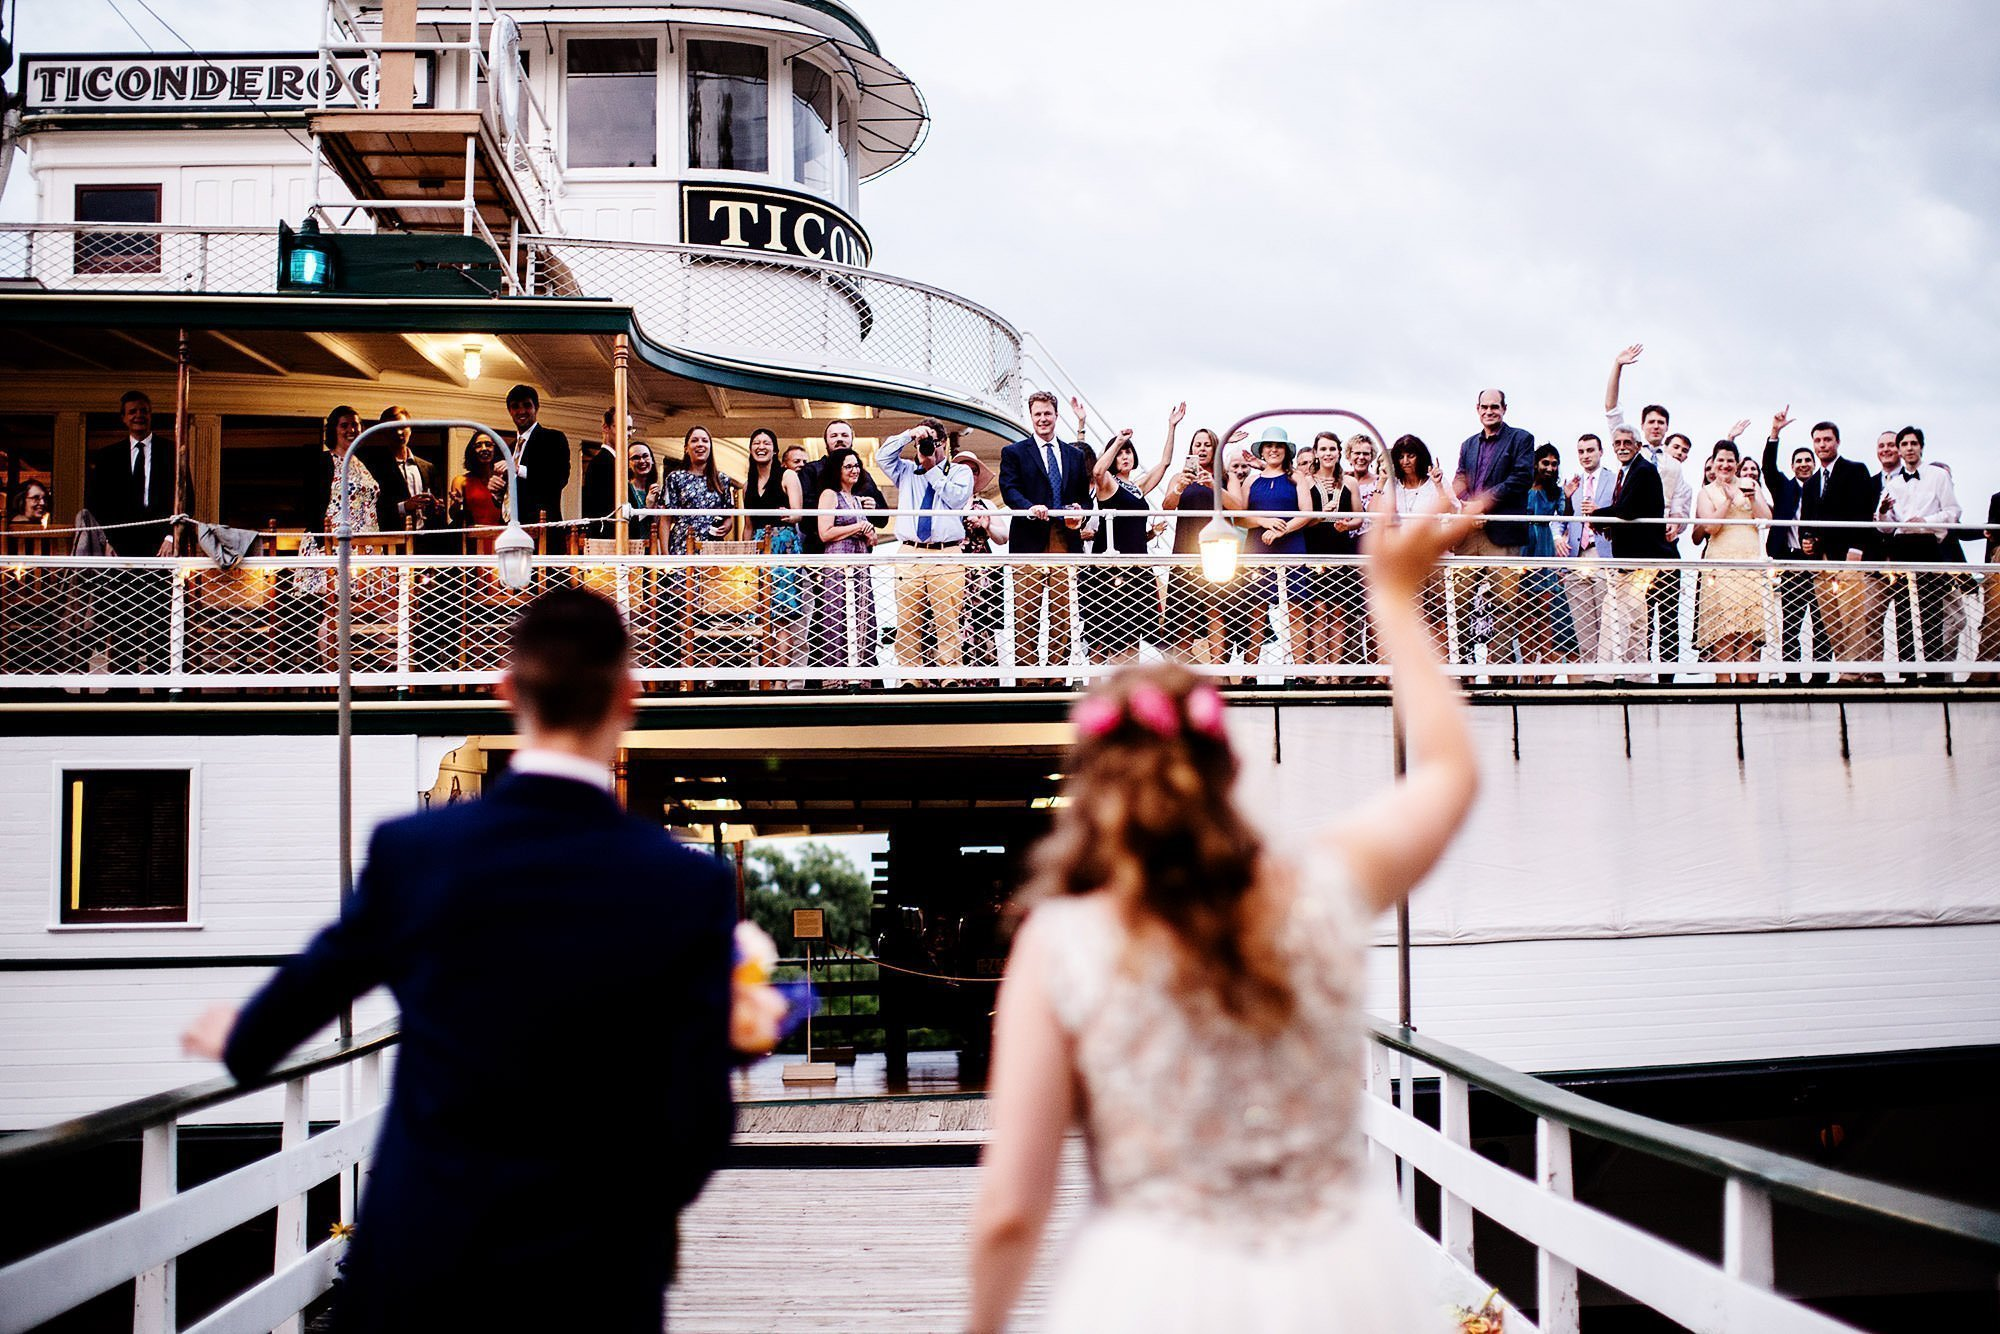 Shelburne Museum Wedding  I  The couple wave at guests on the Ticonderoga during cocktail hour